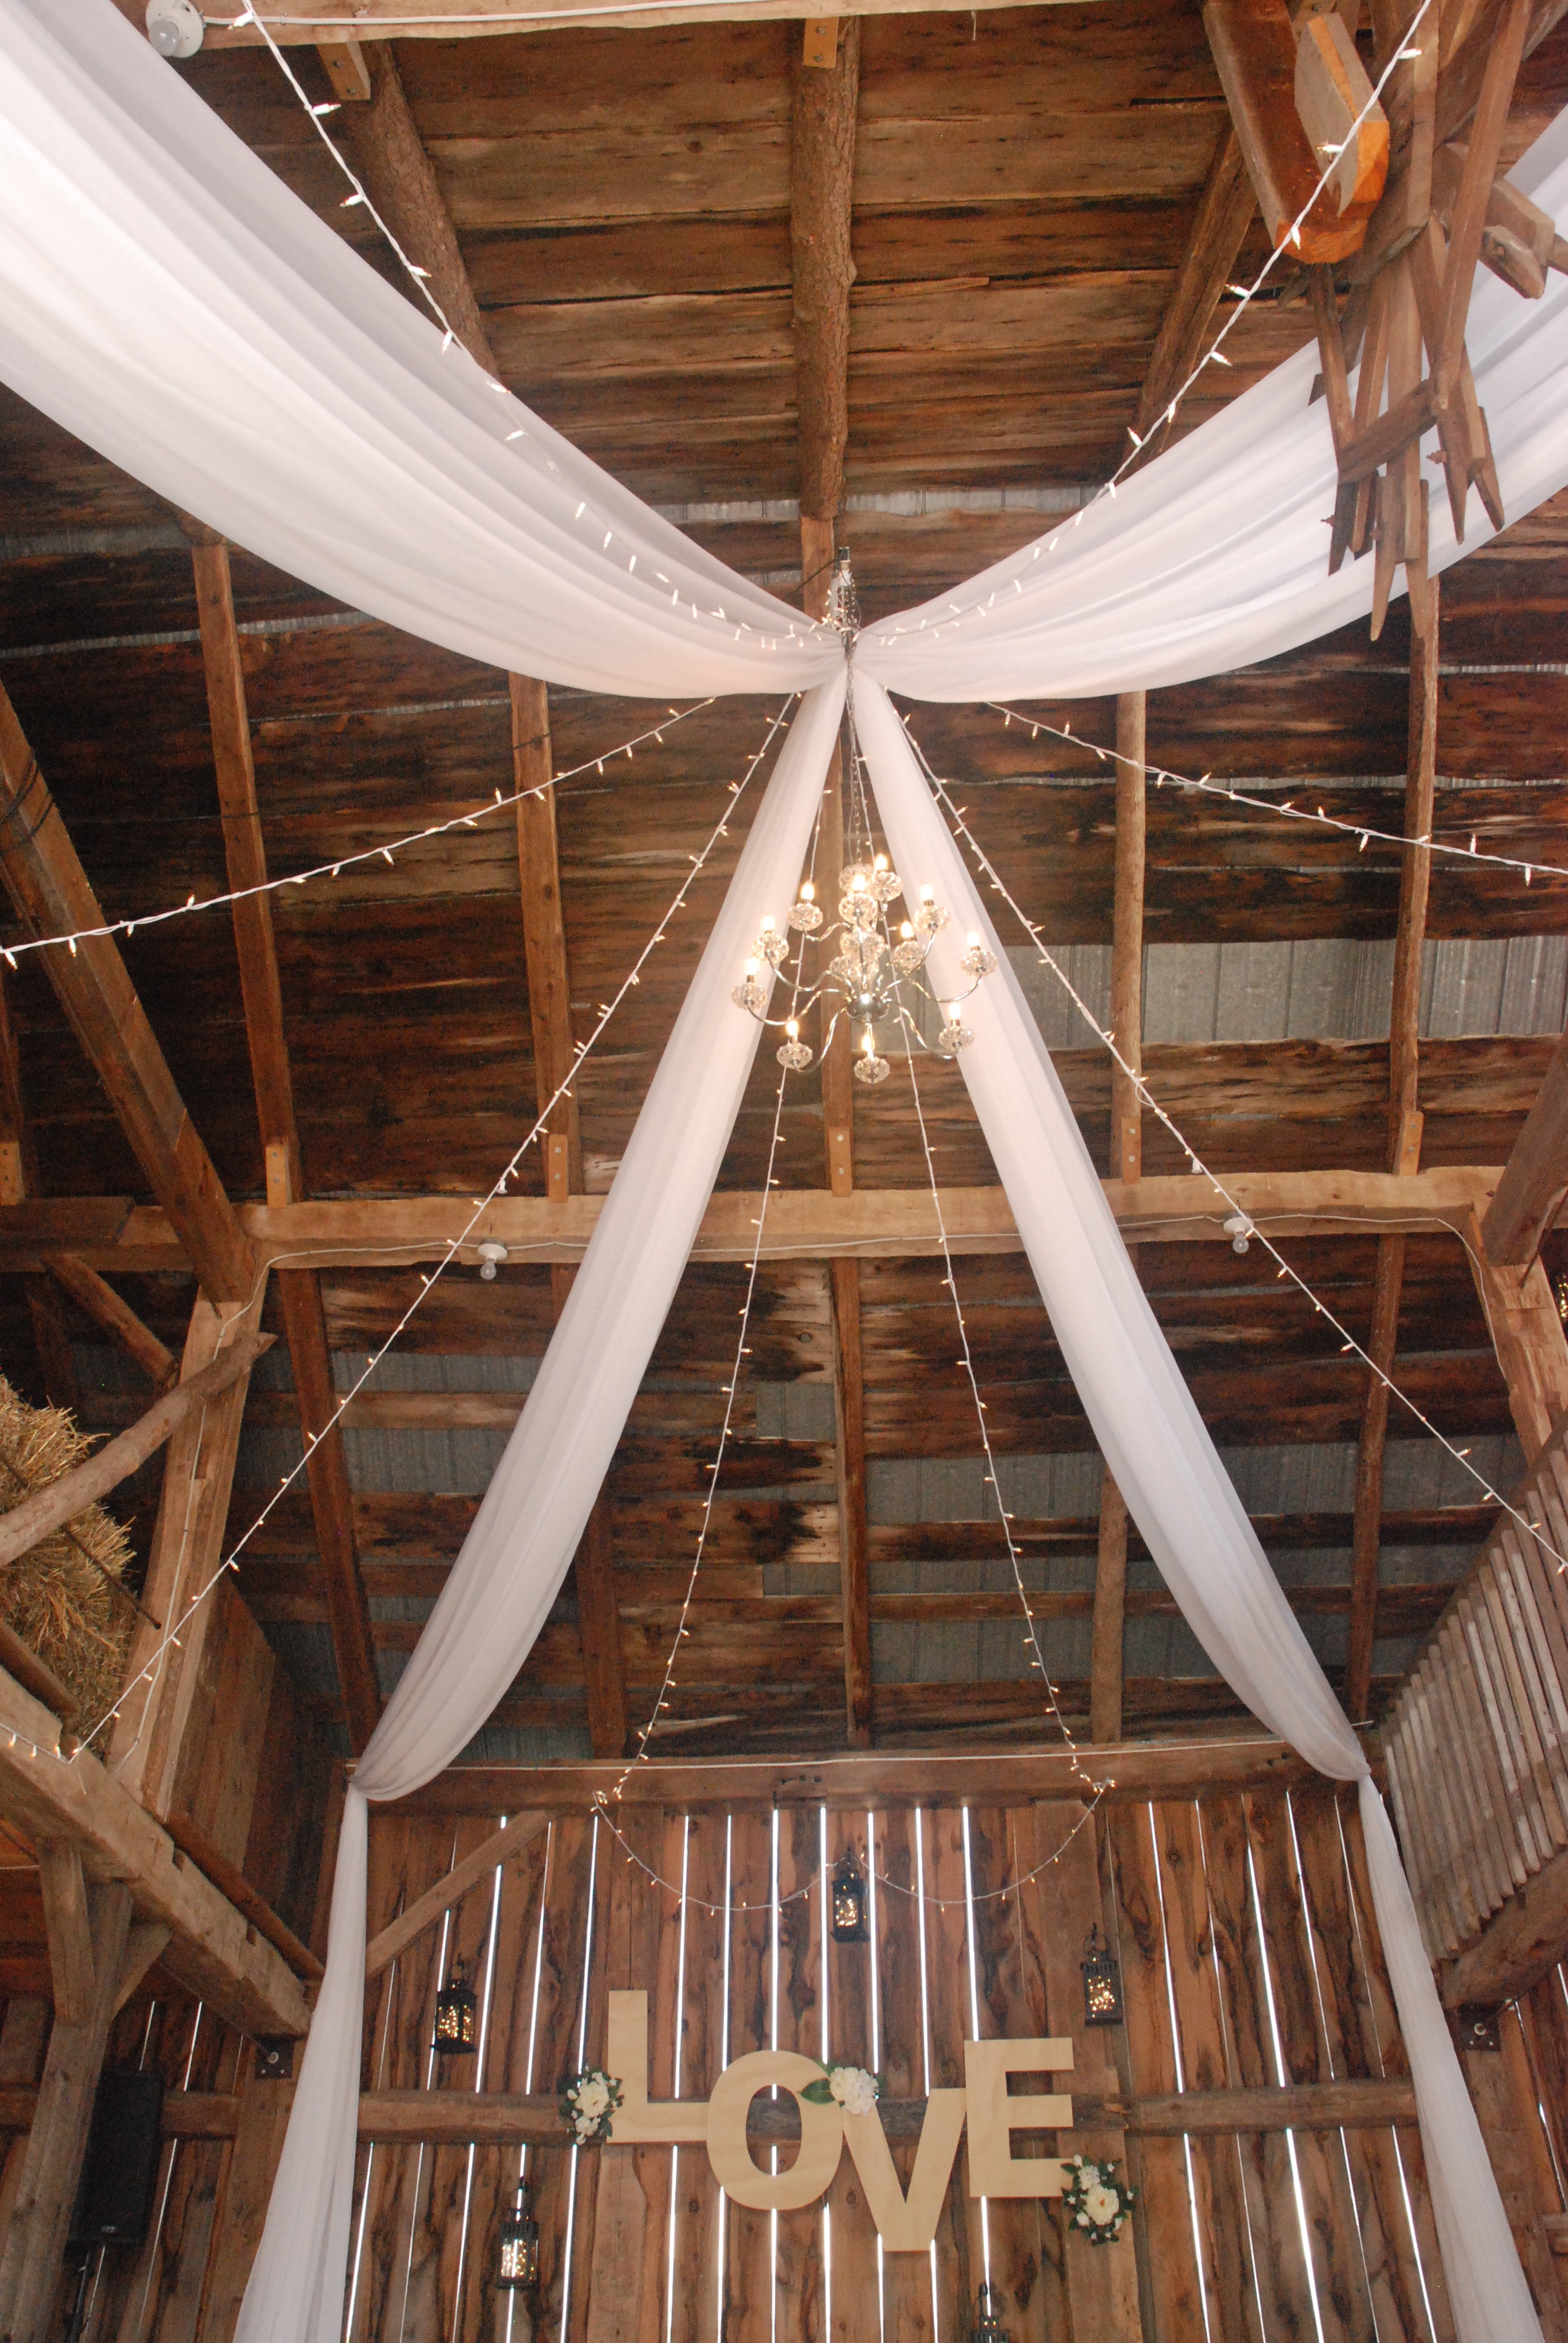 Custom Barn Ceiling Work